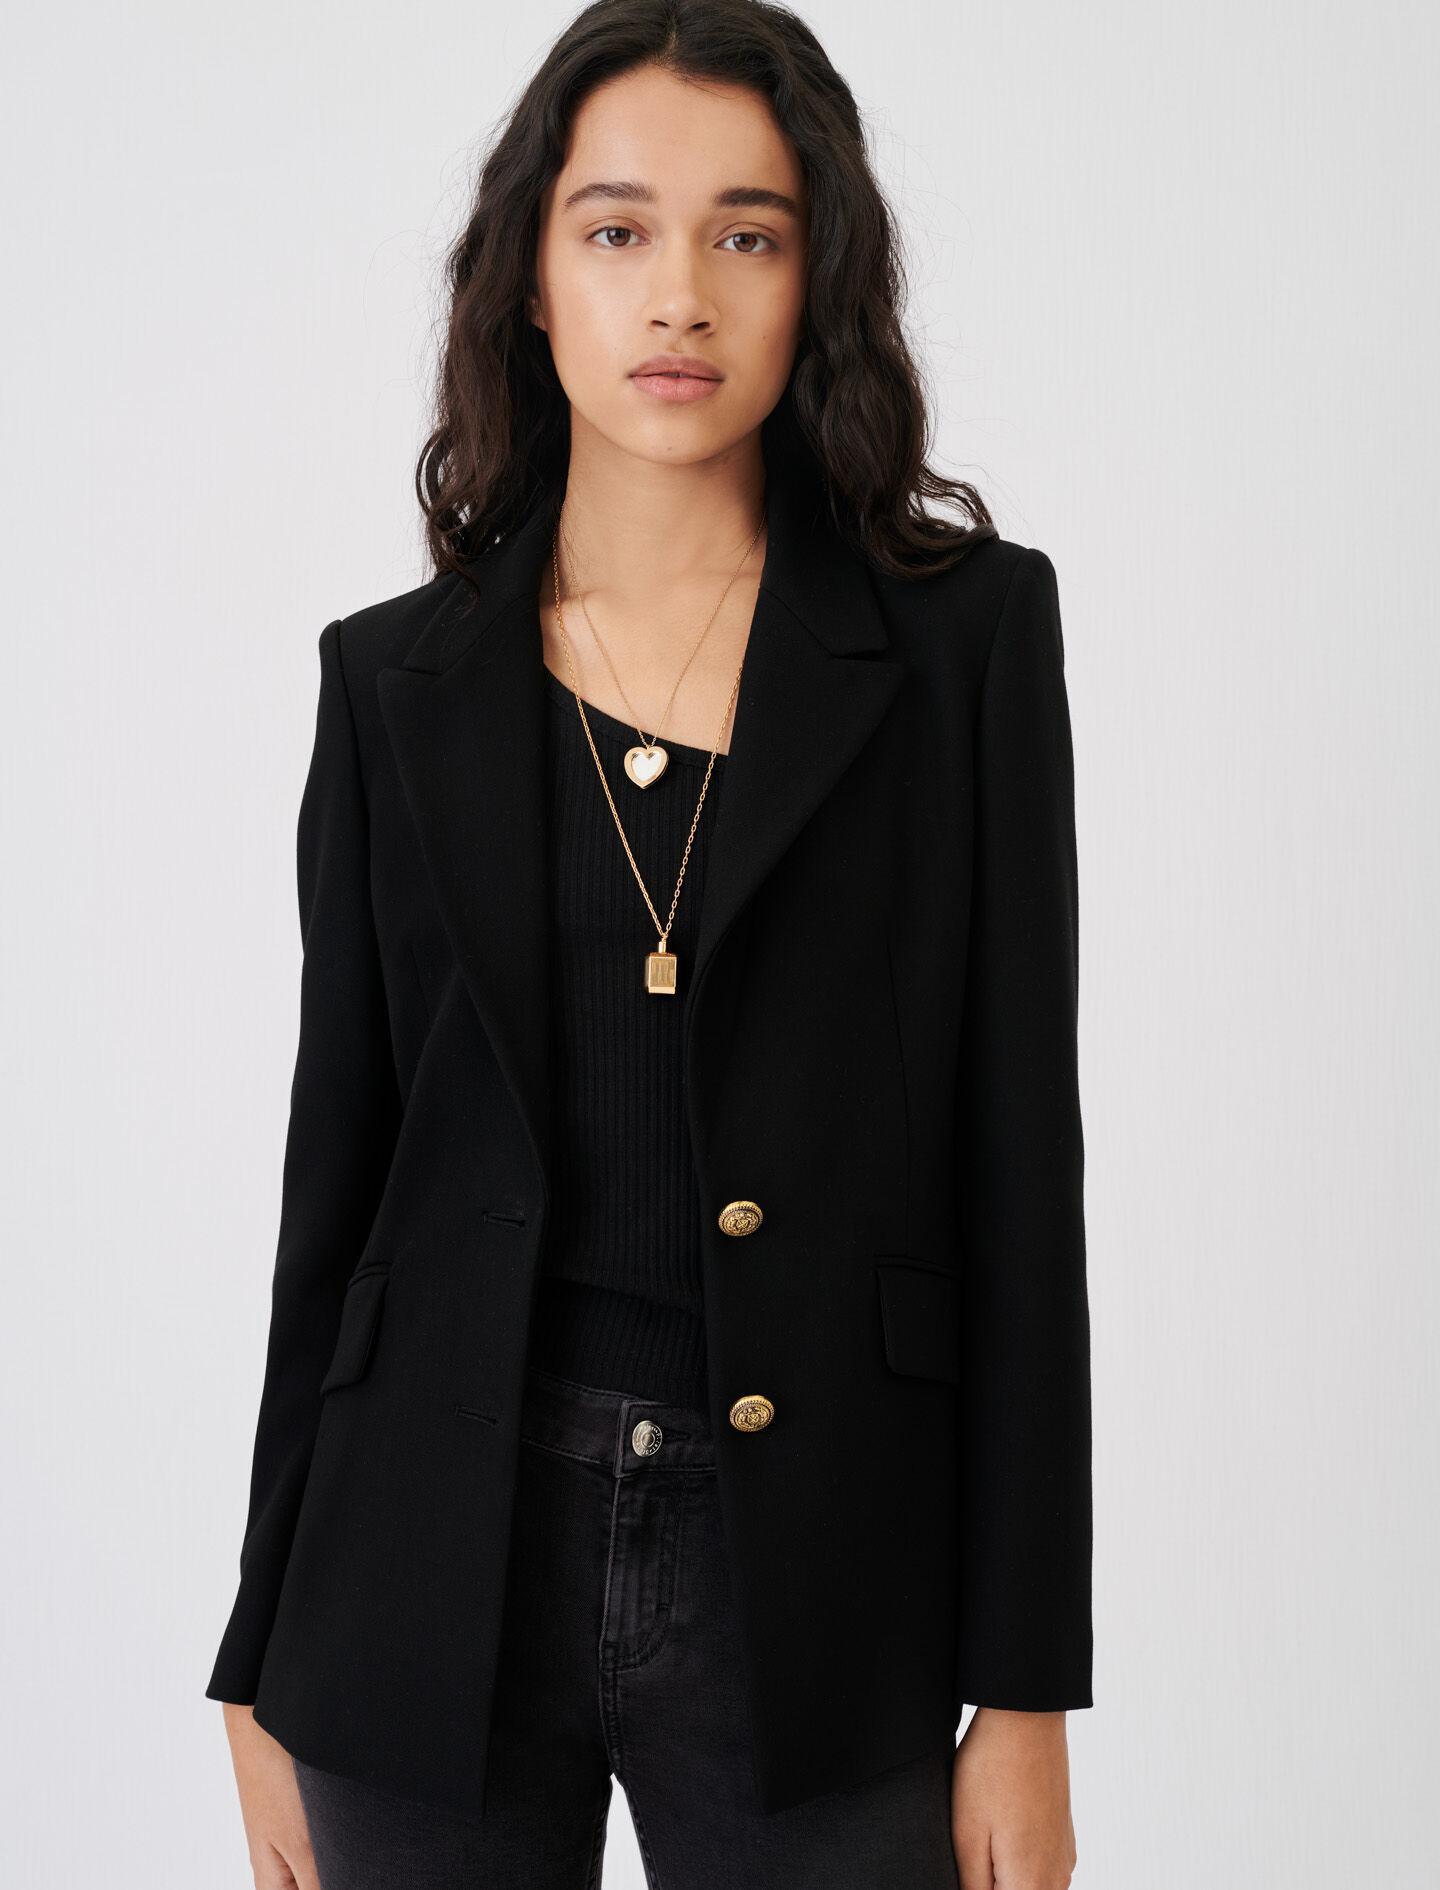 FITTED SUIT JACKET